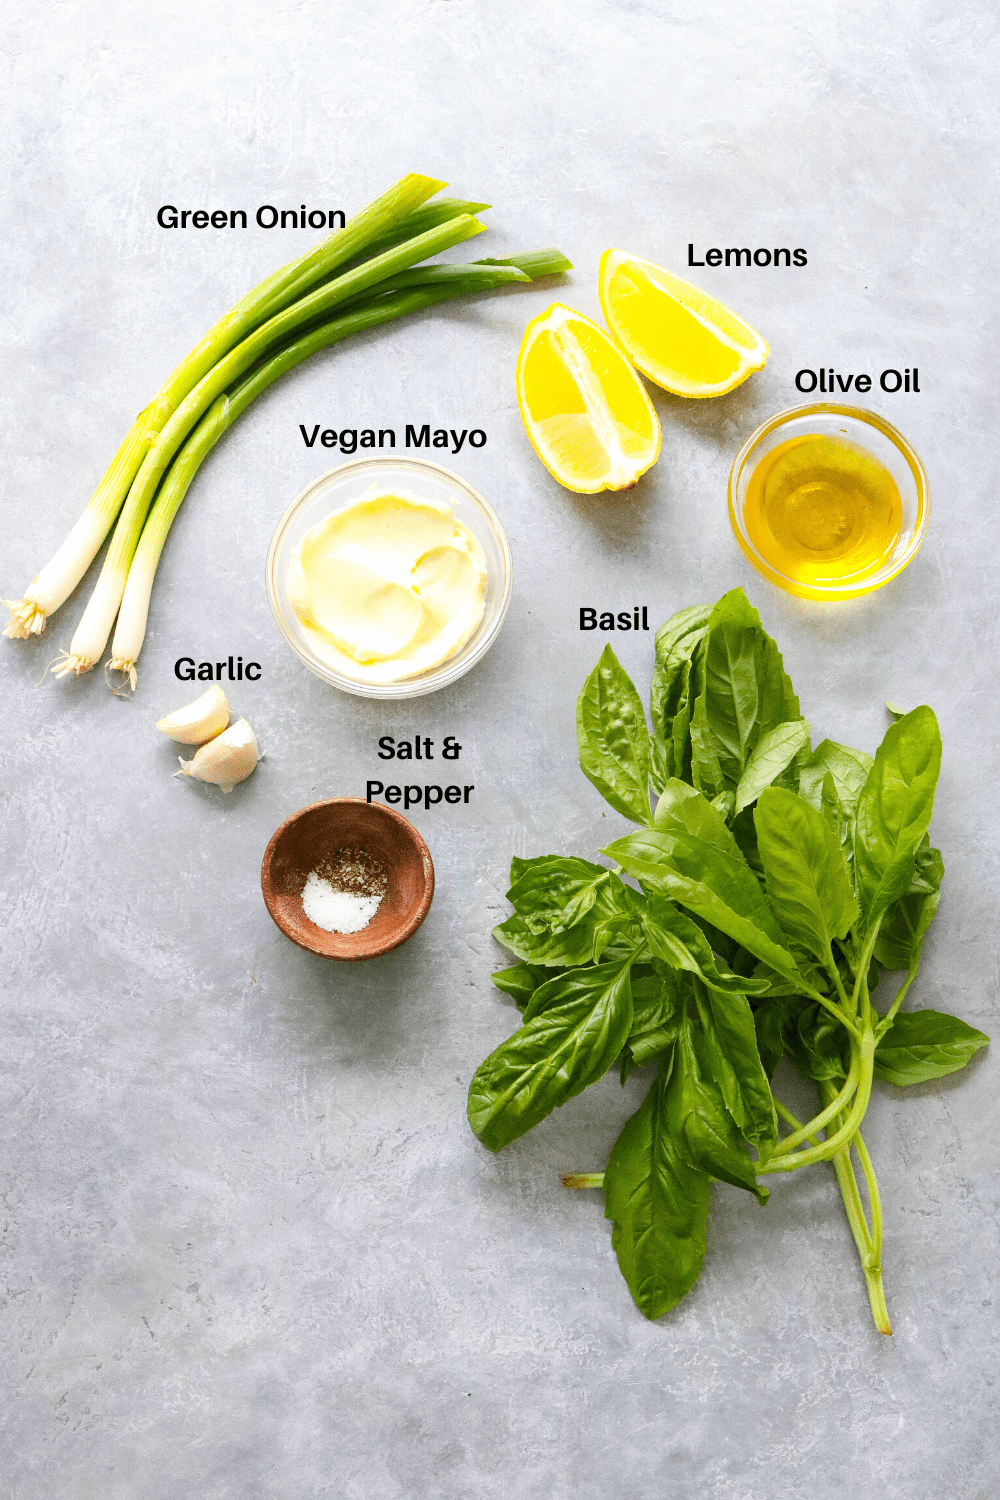 basil, green onion, lemon, mayo, and olive oil on a gray surface